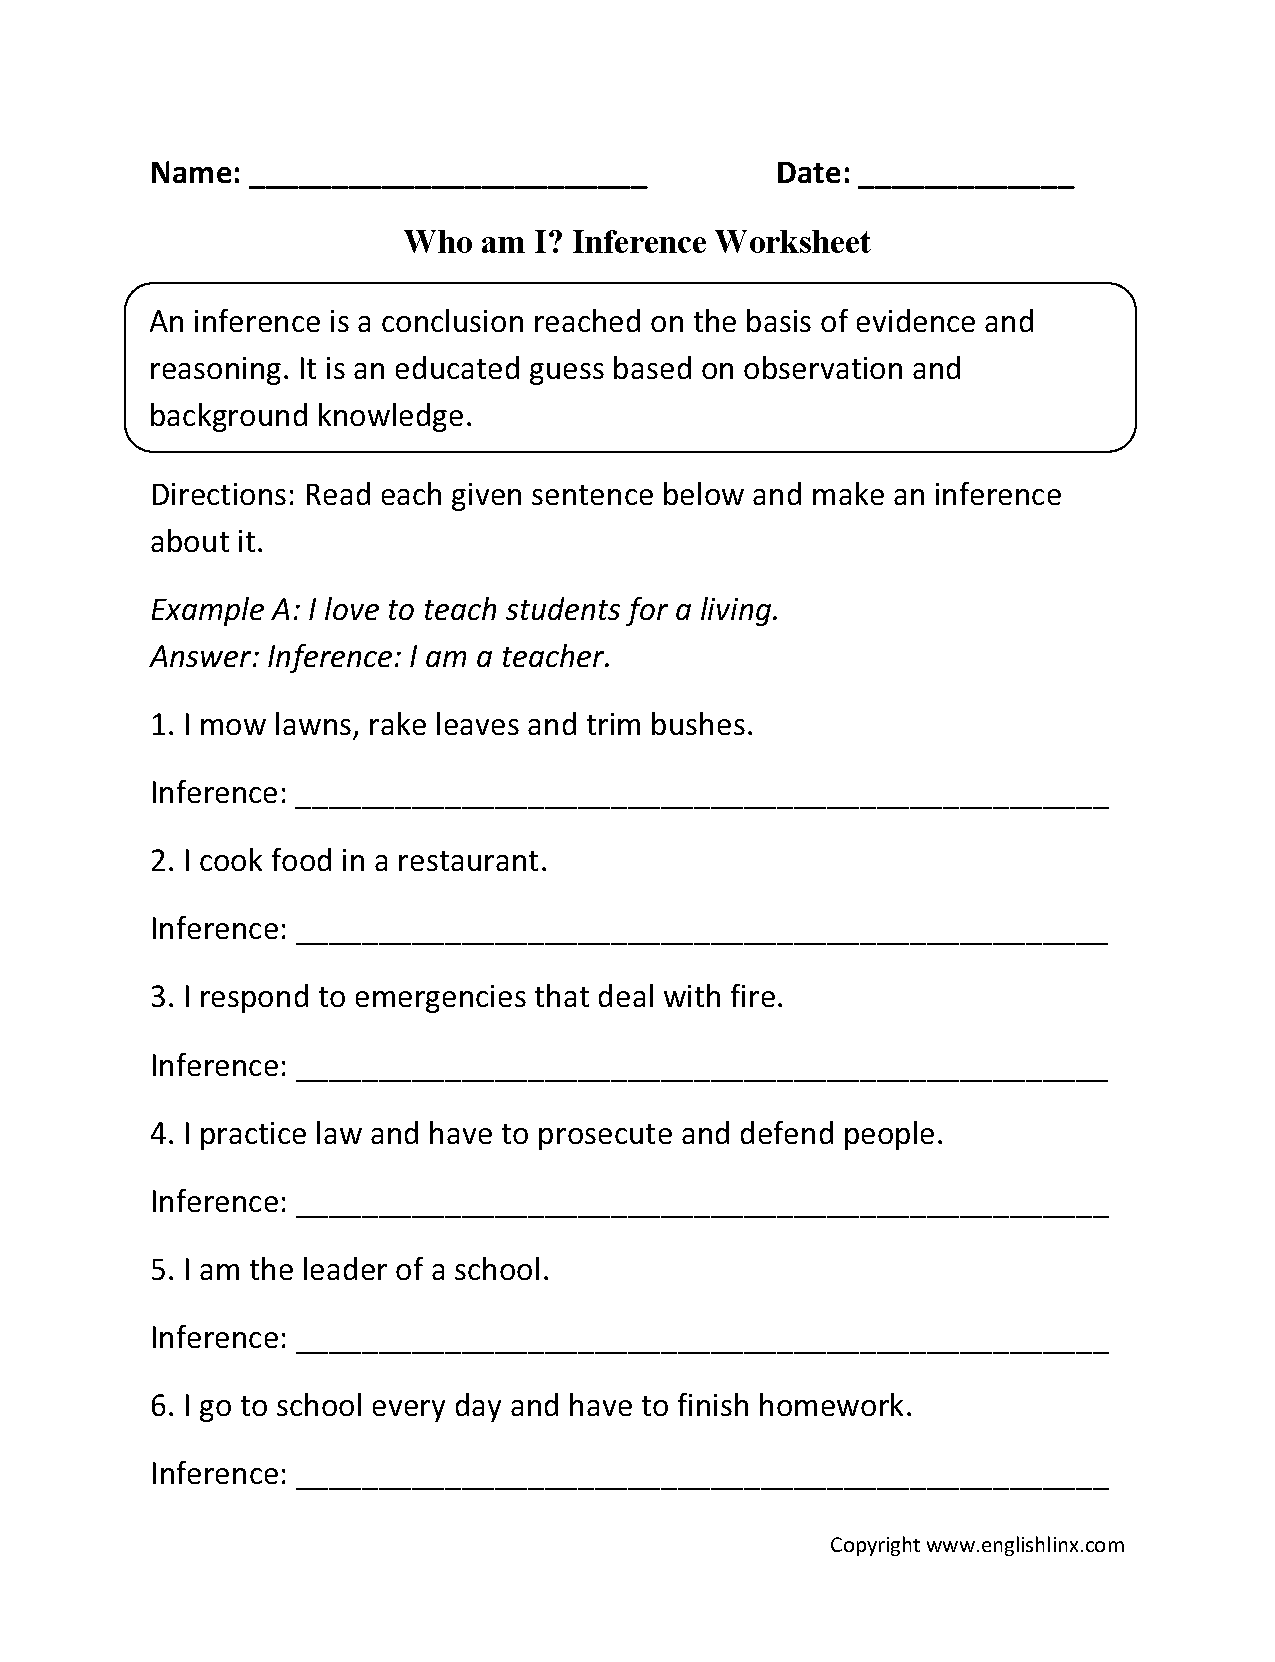 worksheet Who Am I Worksheet inference worksheets who am i worksheets